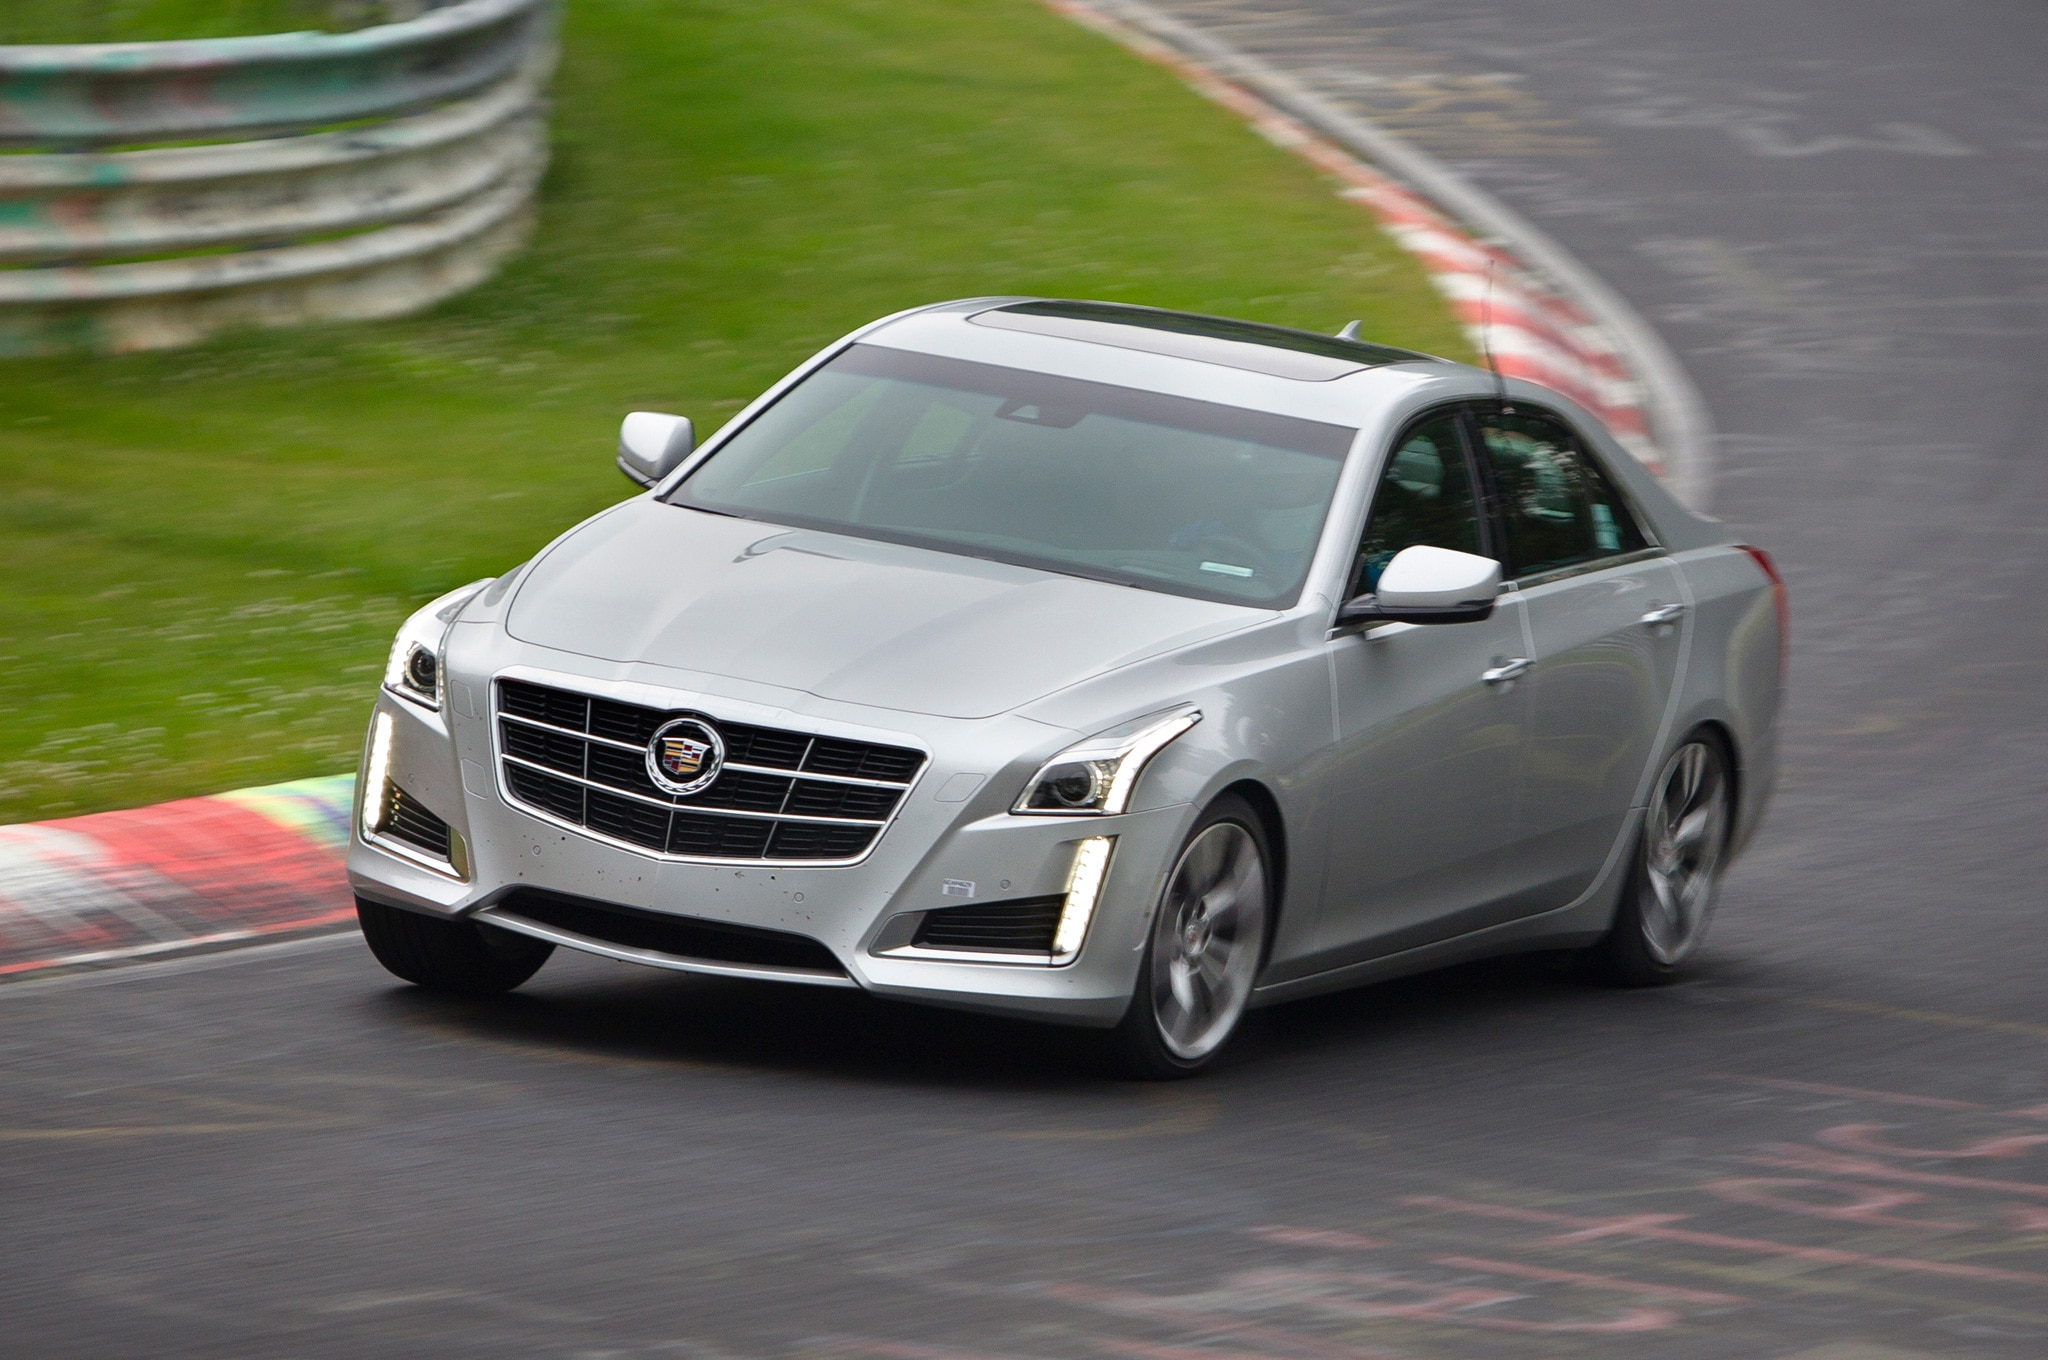 2014 Cadillac CTS Vsport Front Three Quarters View On Nurburgring1